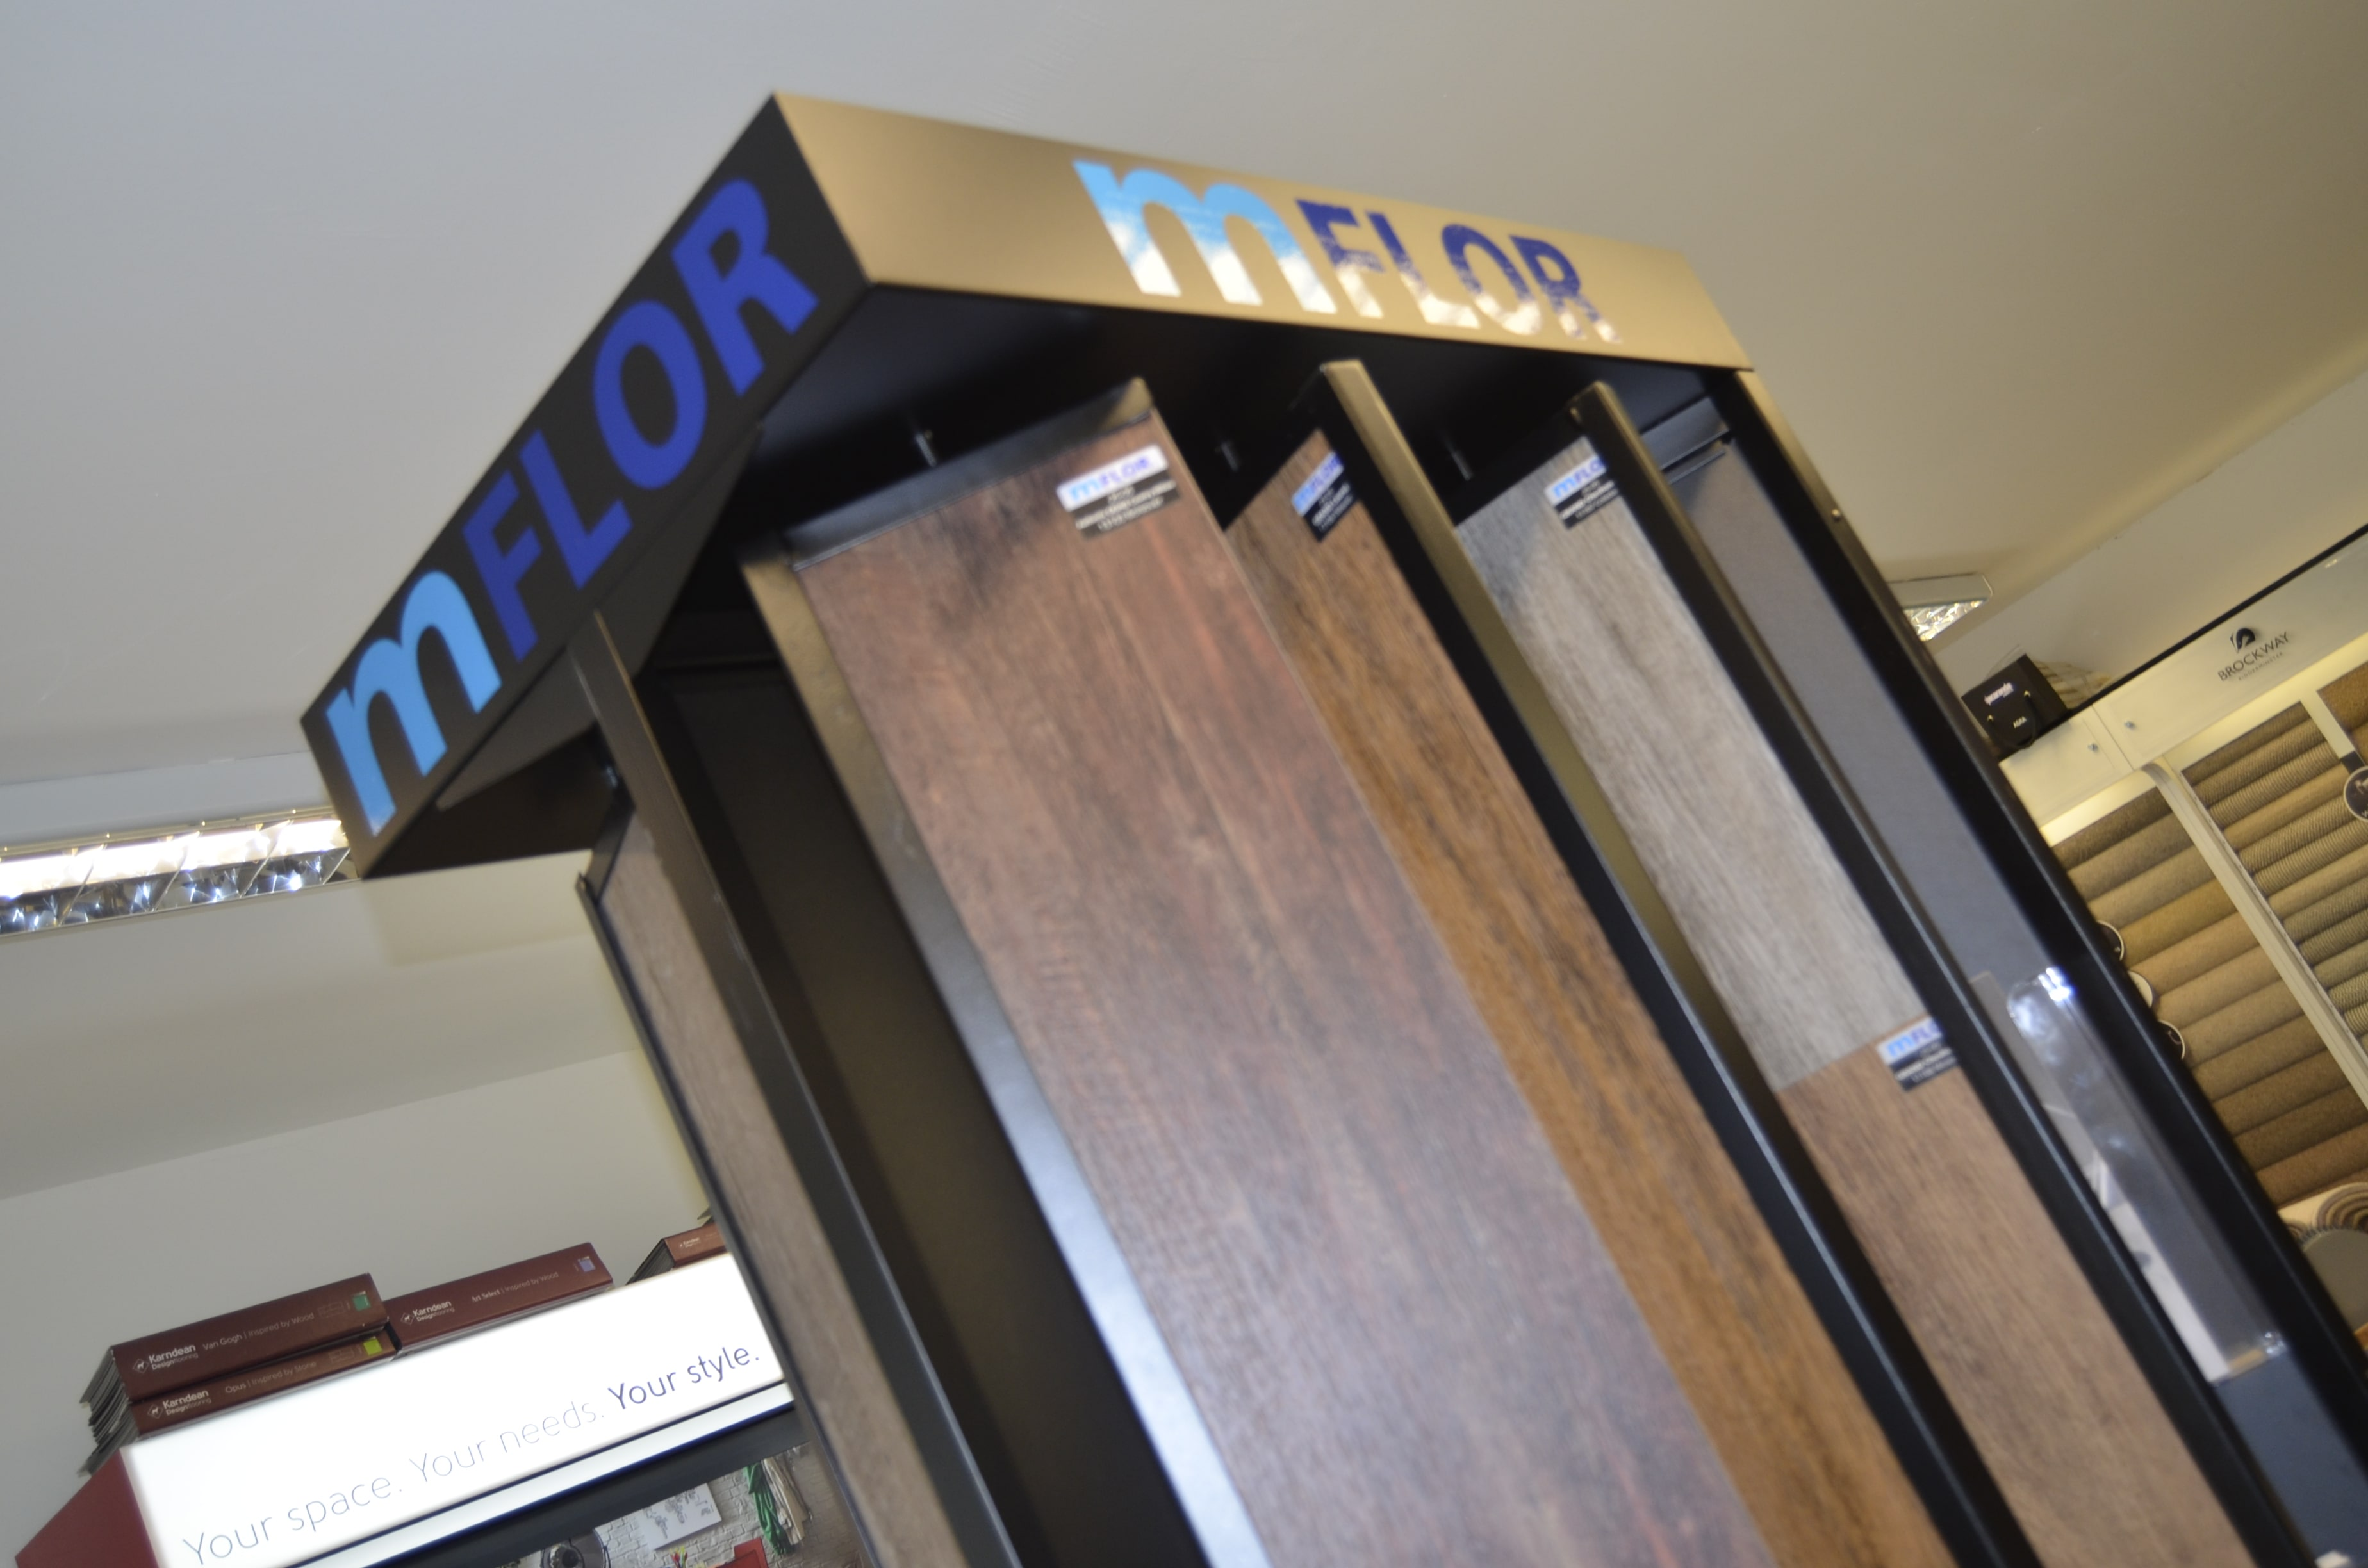 The mFLOR GRAND LVT samples at Flooring 4 You's Knutsford flooring showroom